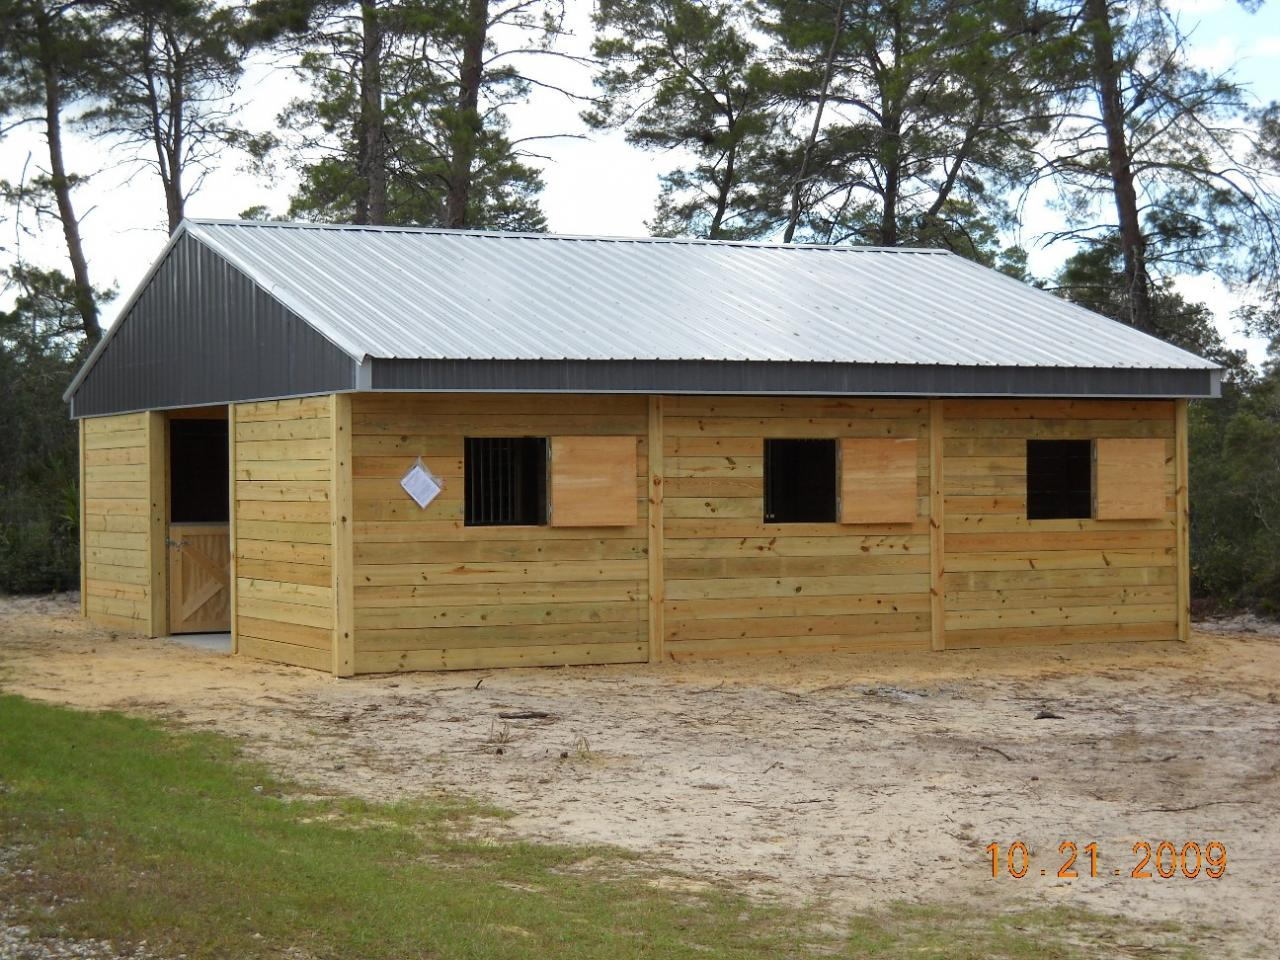 Woodys barns horse barns for 2 stall horse barn kits